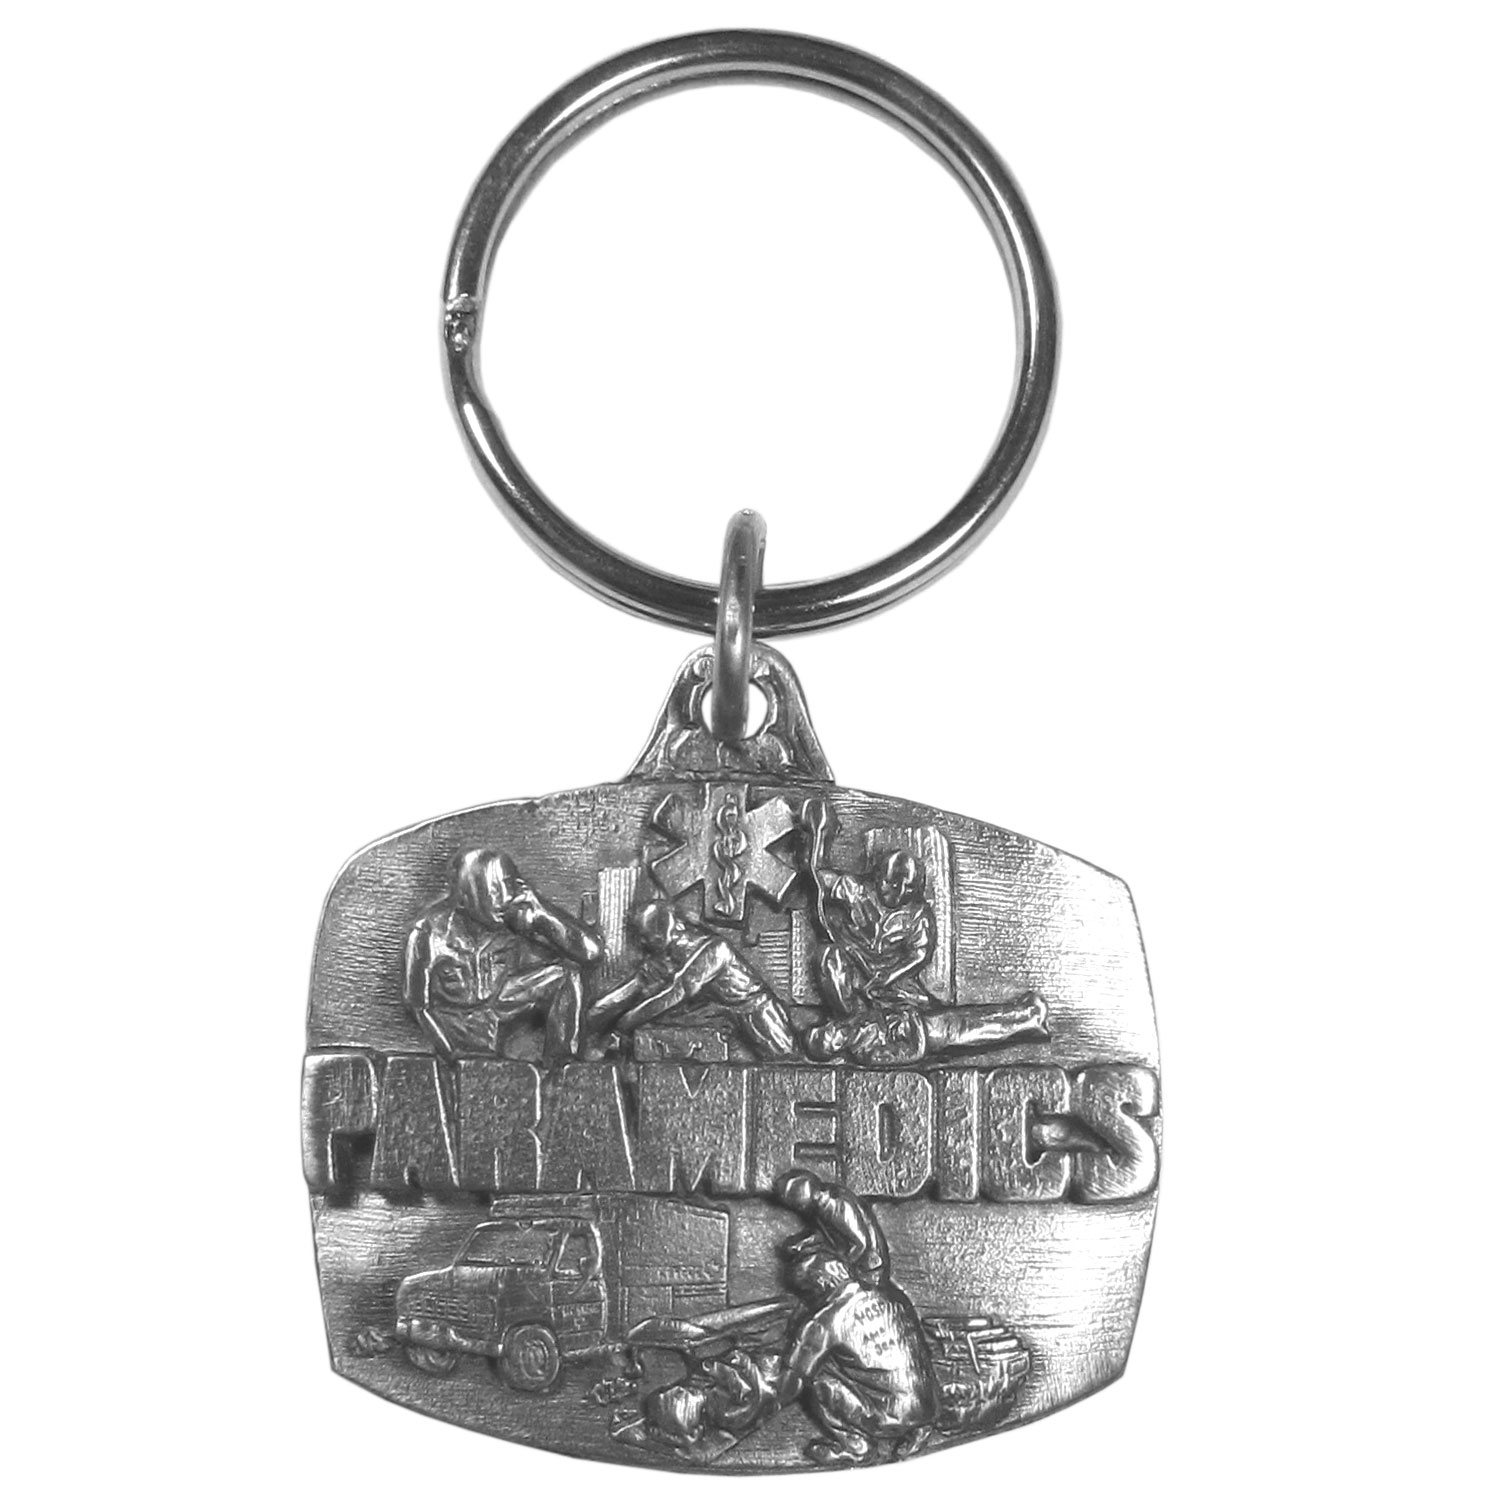 "Paramedic Key Ring Plain - ""This key chain is for the Paramedic, it has an emergency vehicle, Paramedics tending to patients and and on the top is the Star of Life. On the back are the words """"First On The Scene"""". Key chain is 1-1/2"""" x 1-1/4""""."""